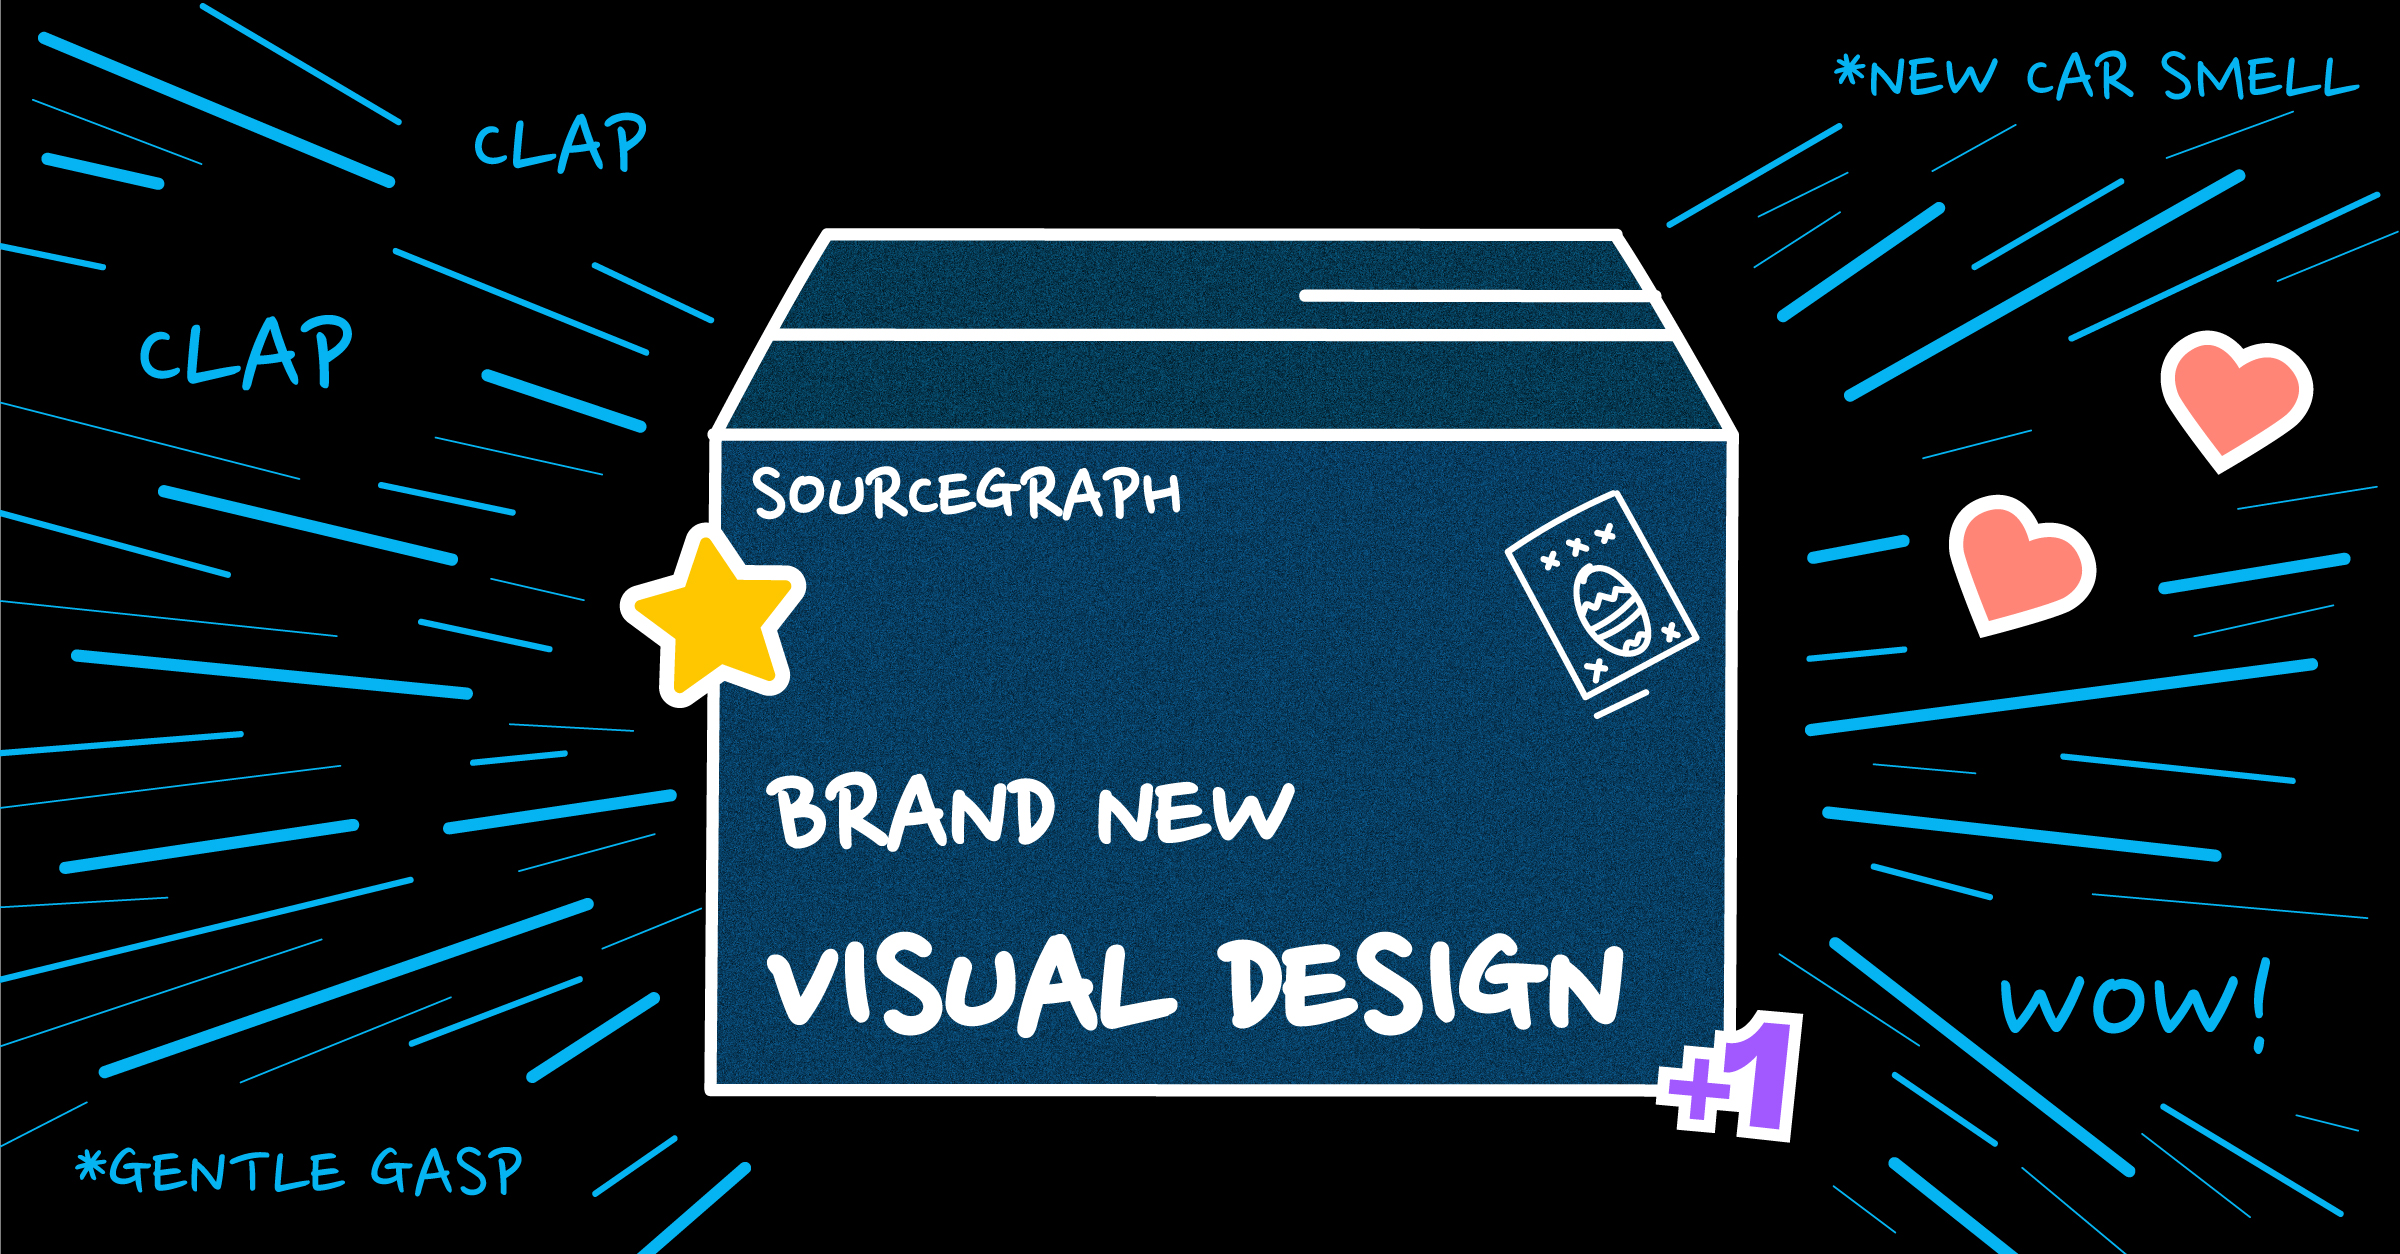 Sourcegraph's new visual design and UI unveiled